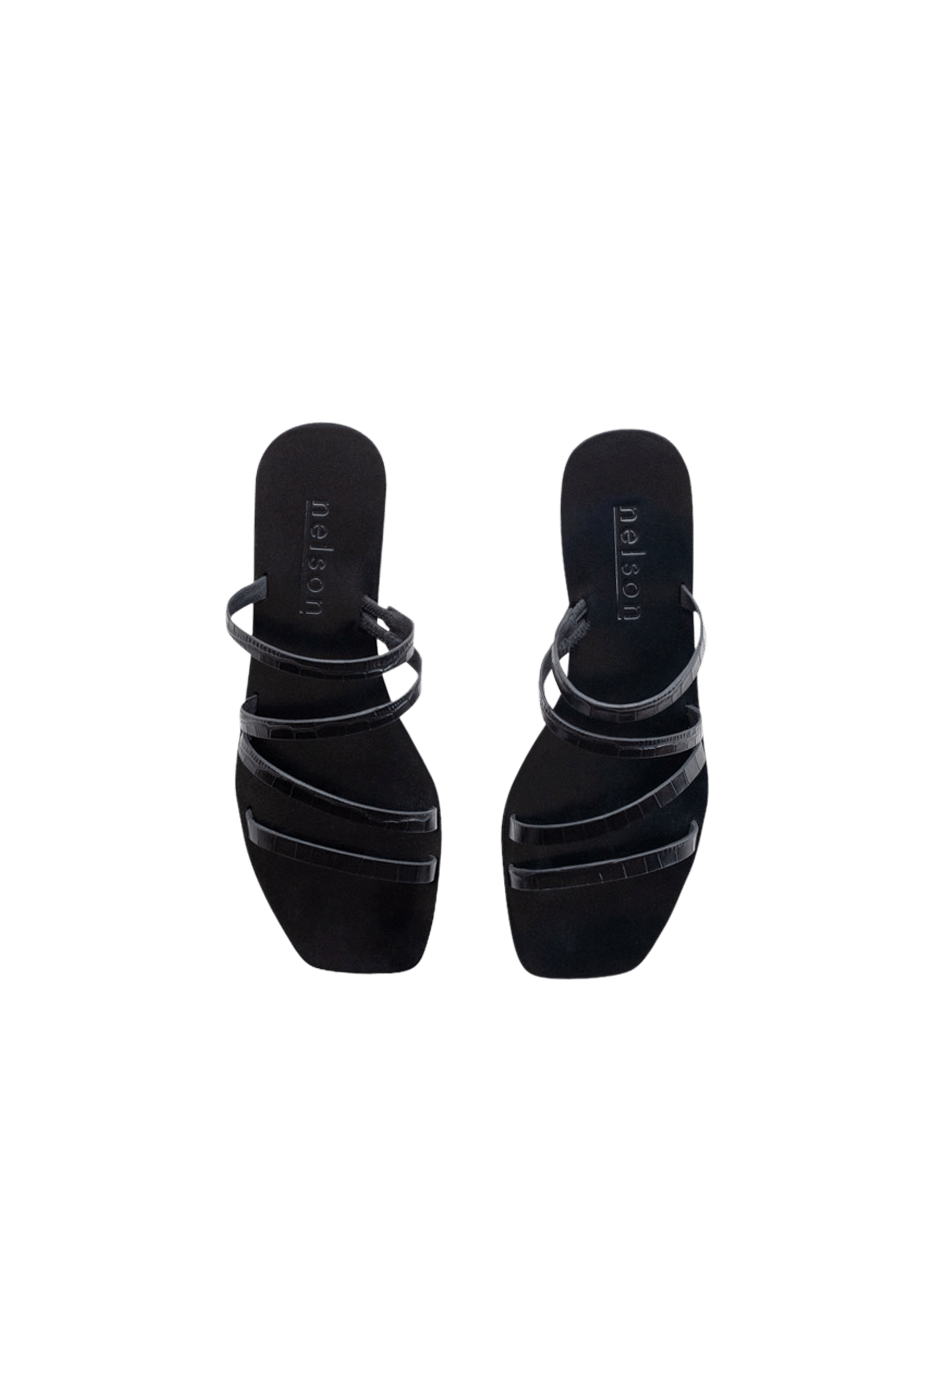 Myra Slide Black Croc